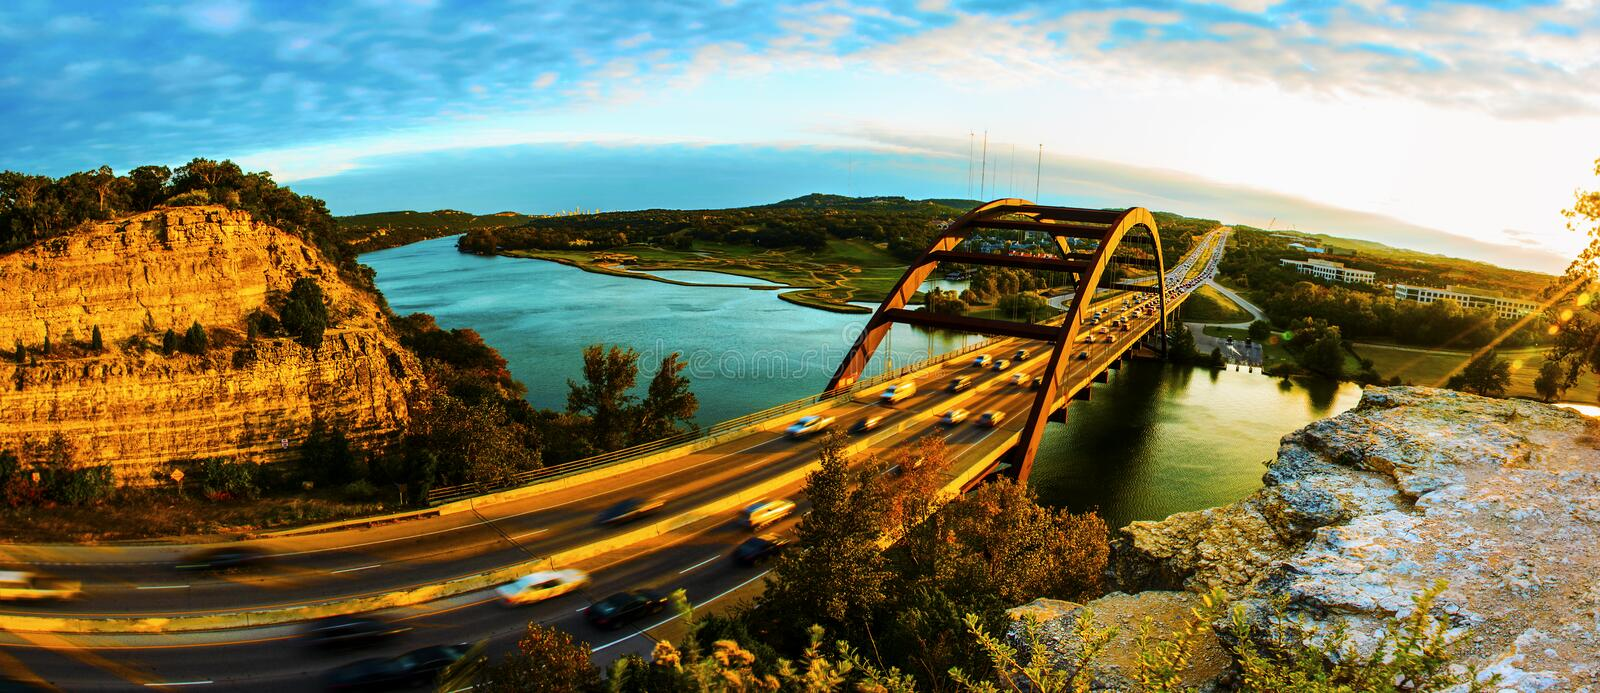 Por do sol da ponte 360 ou da ponte de Pennybacker panorâmico fotos de stock royalty free